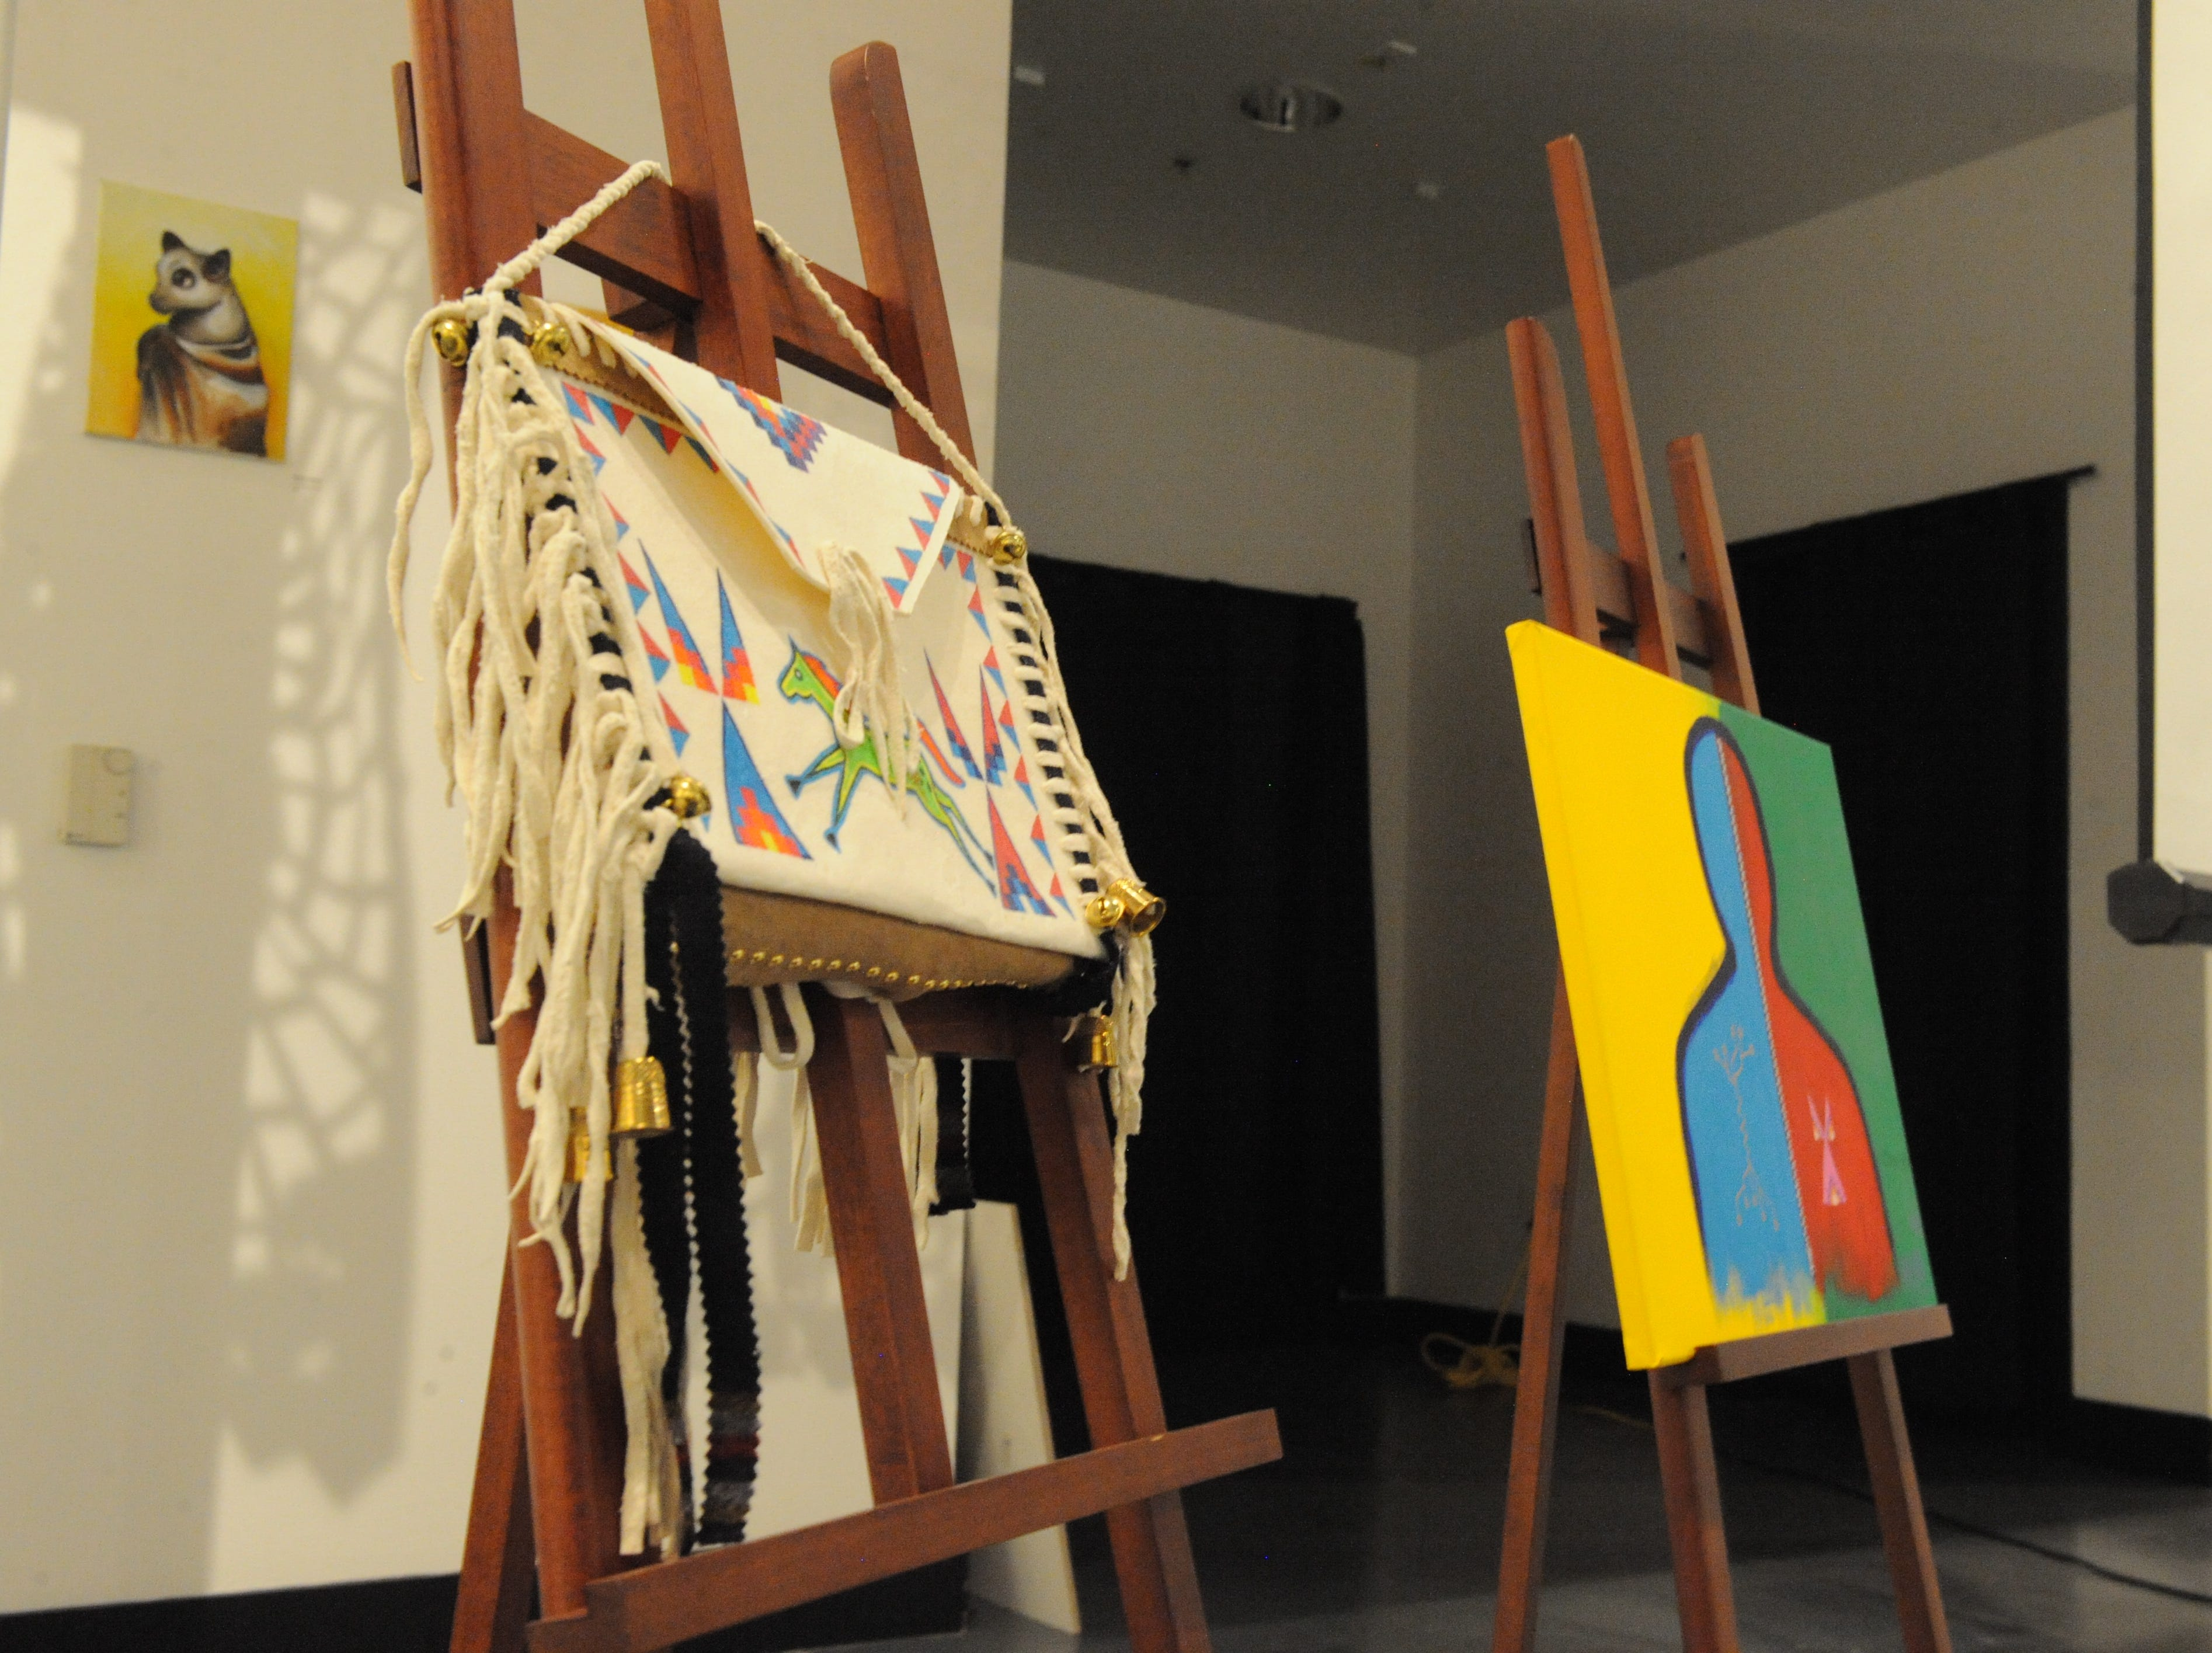 The Rock Your Mocs event took place at the CSUMB Salinas Center for Arts and Culture Thursday evening.